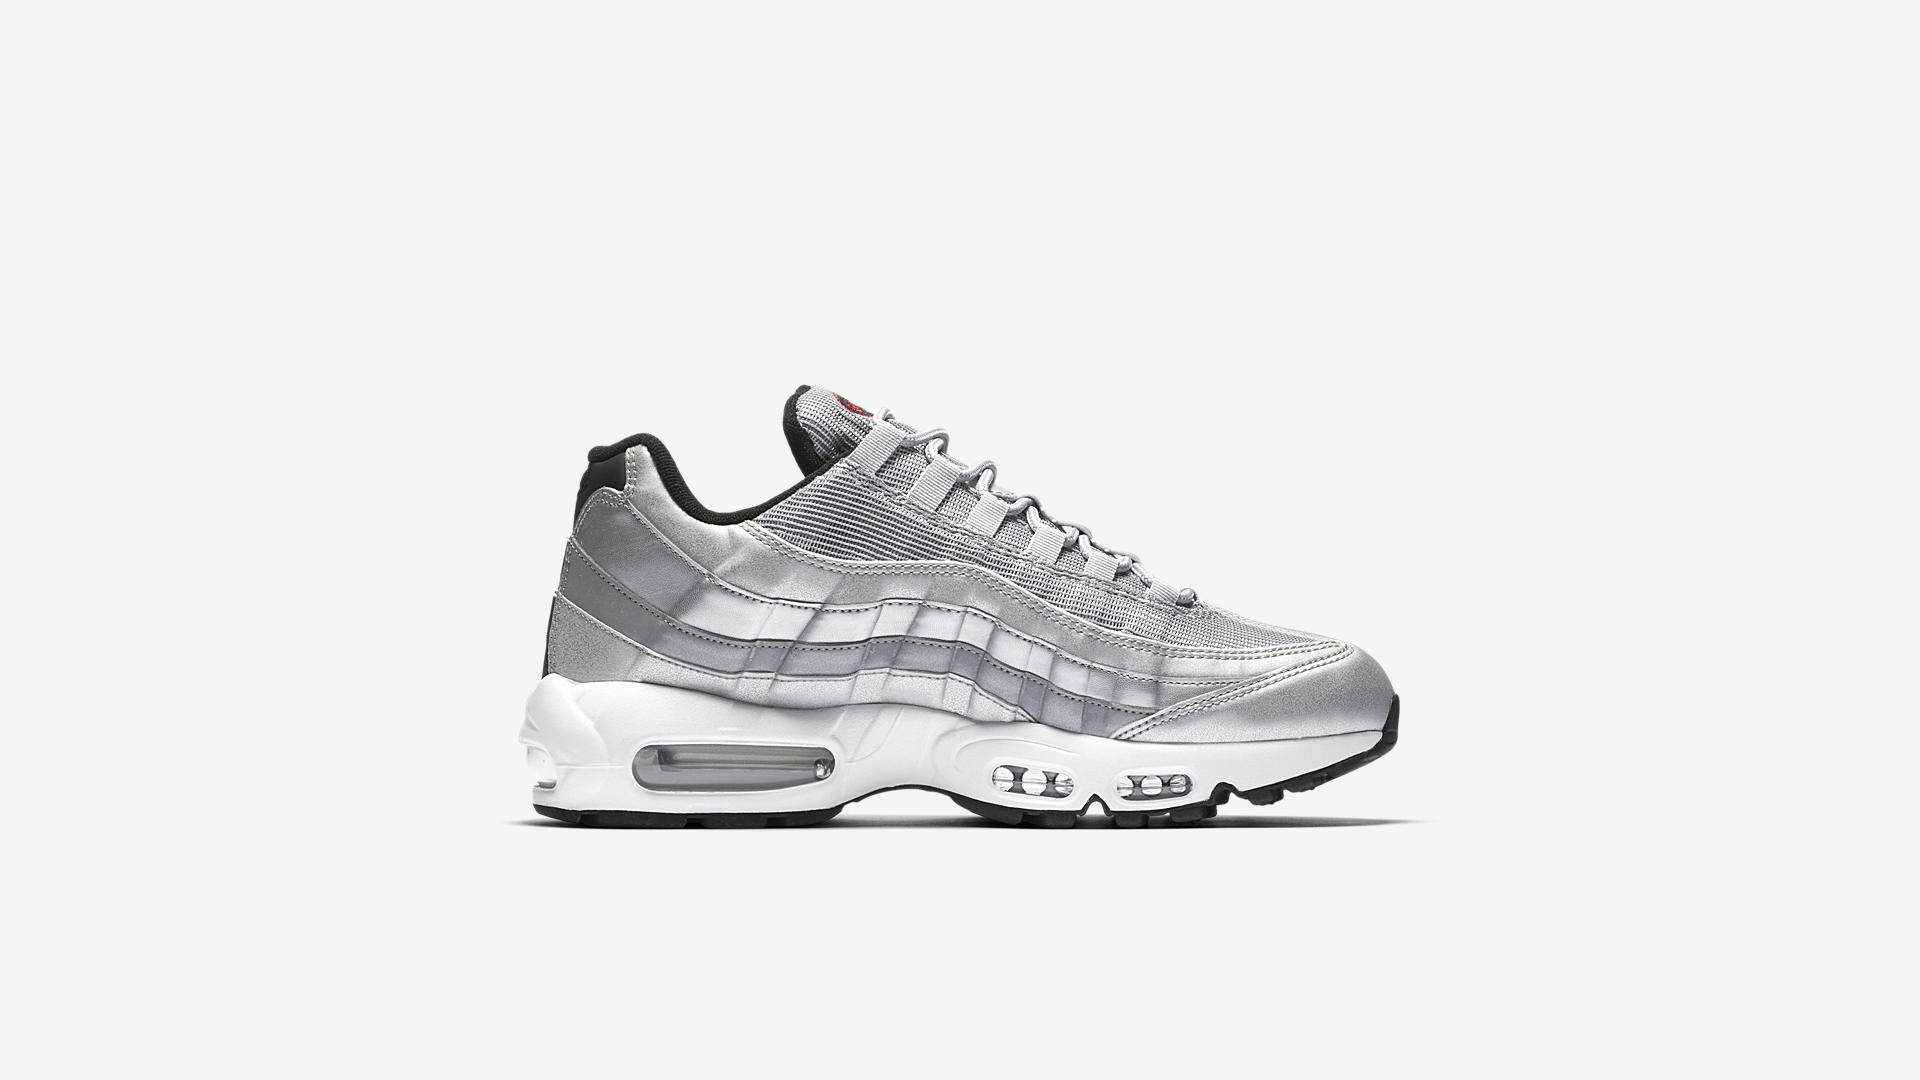 Nike Air Max 95 PRM Metallic Silver 918359 001 3